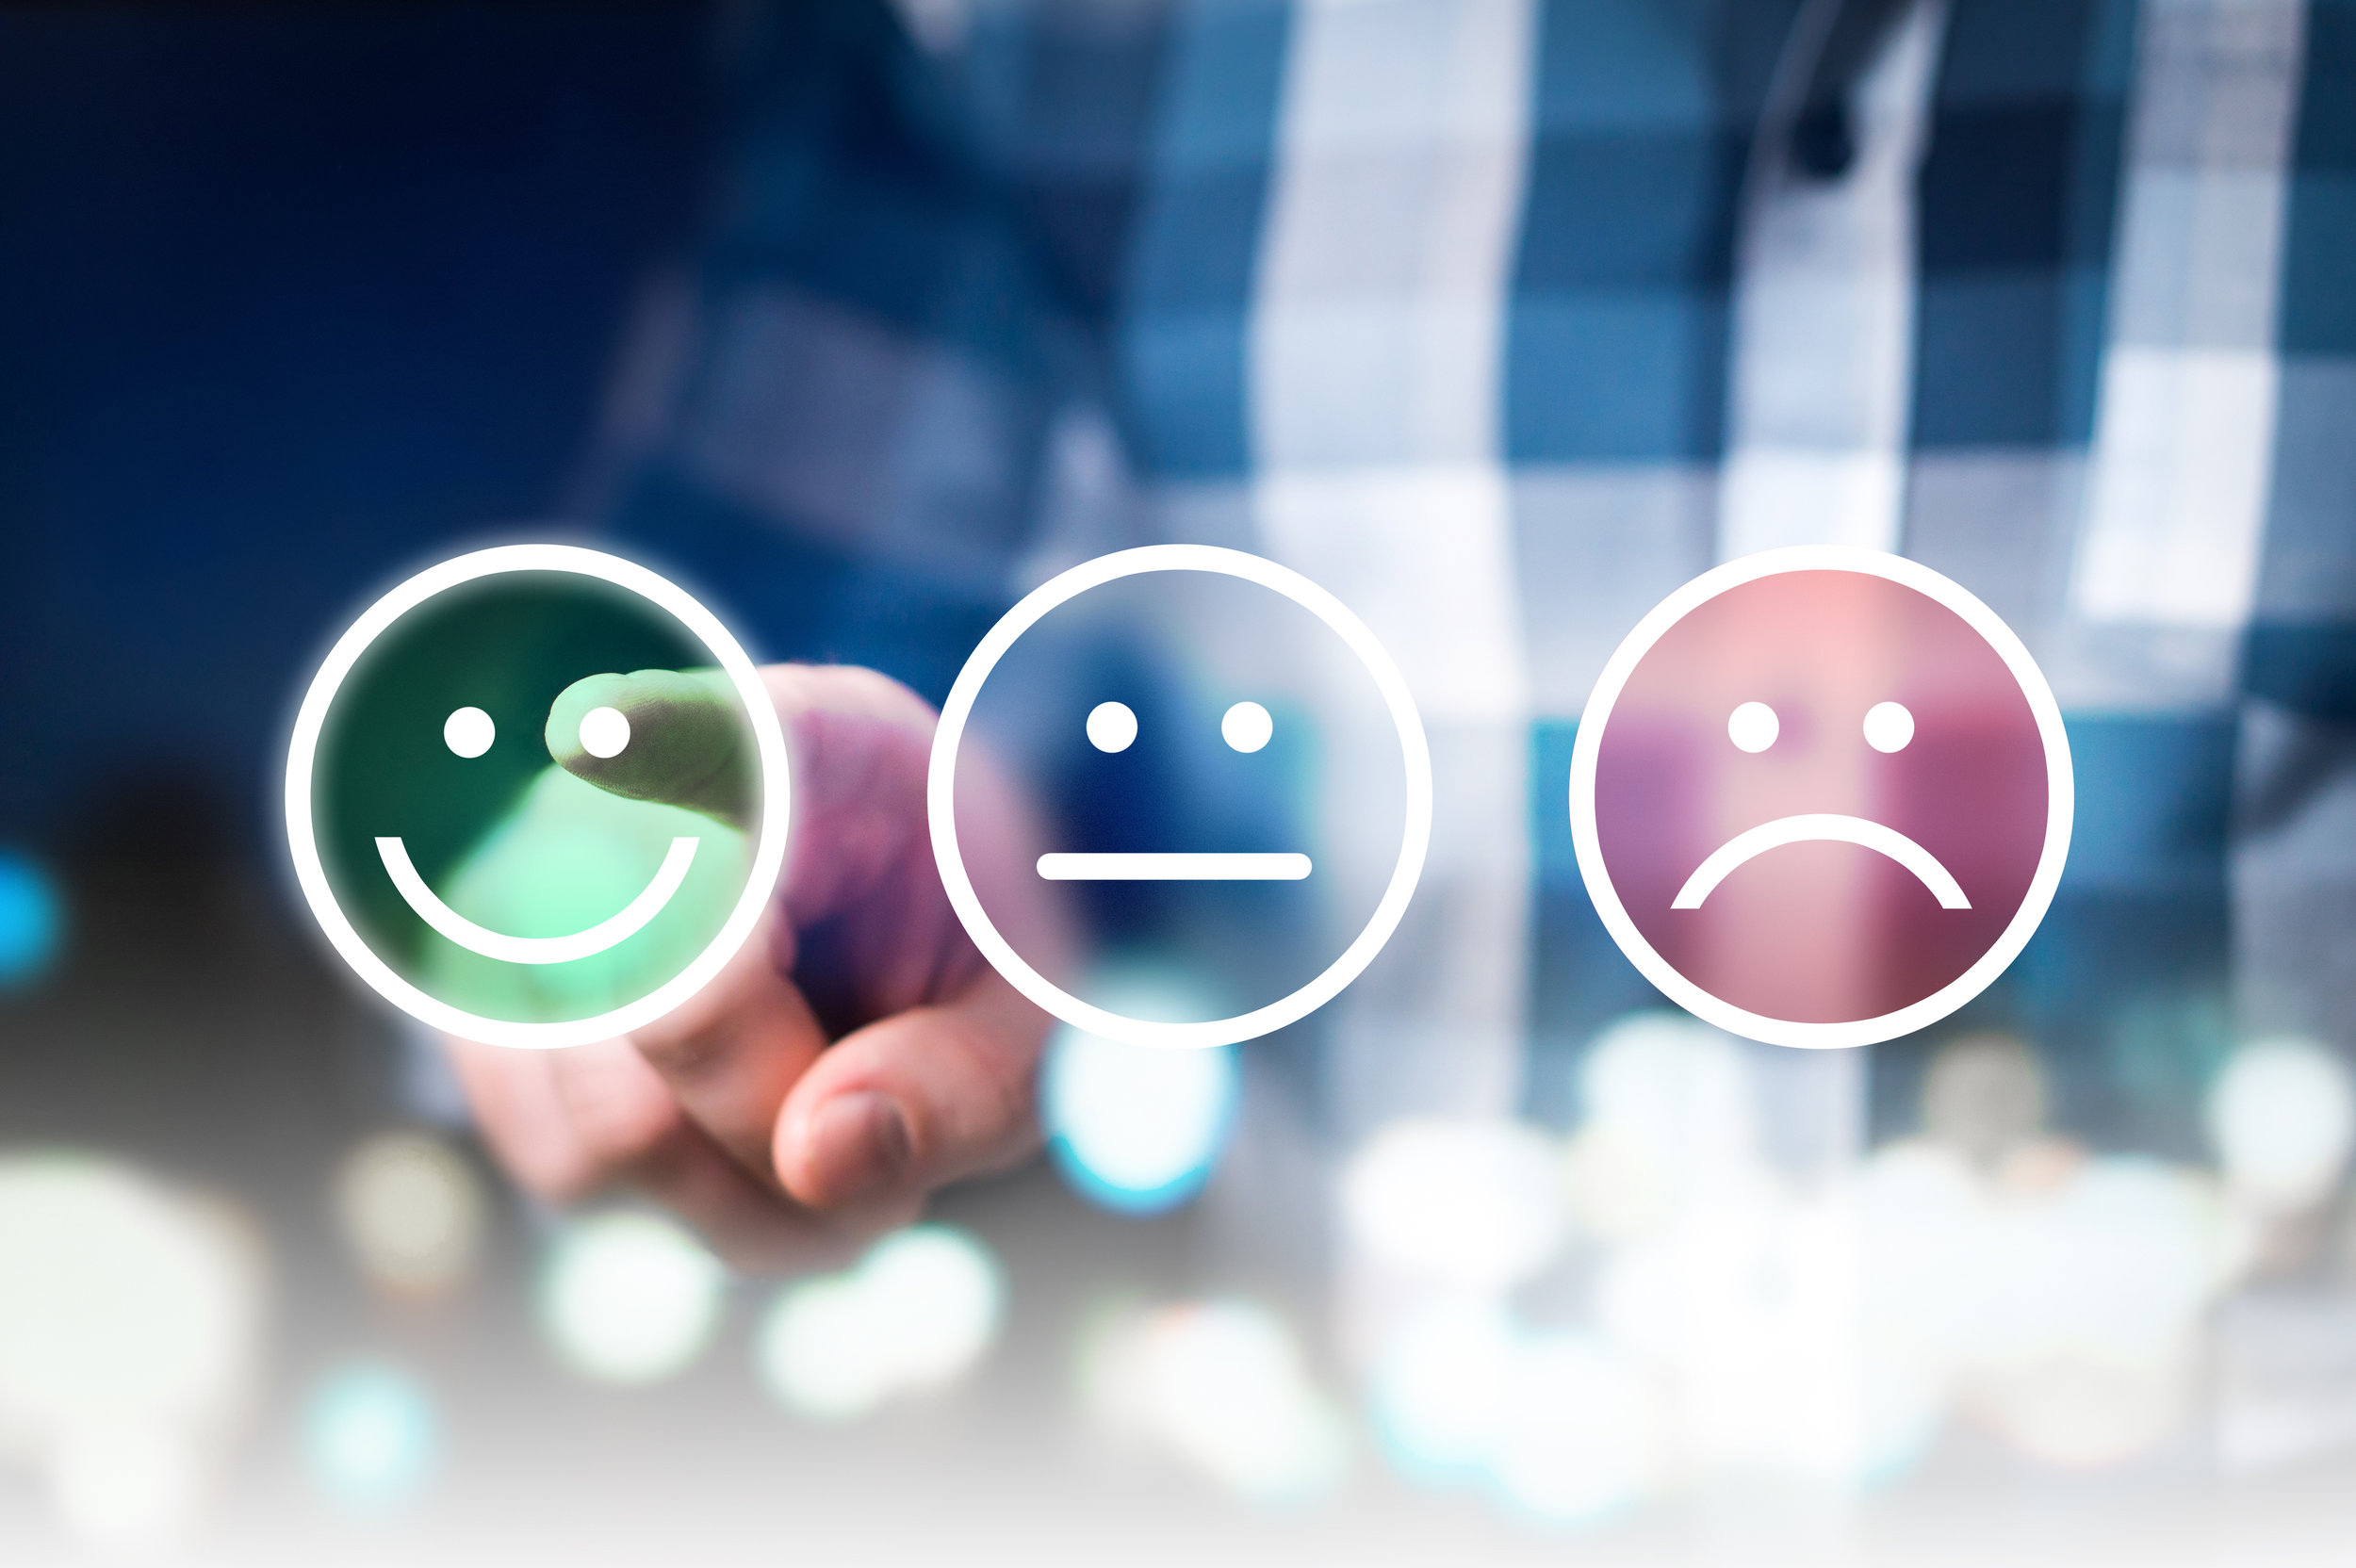 Business-man-giving-rating-and-review-with-happy,-neutral-or-sad-face-icons.-Customer-satisfaction-and-service-quality-survey.-917601646_3872x2578.jpeg